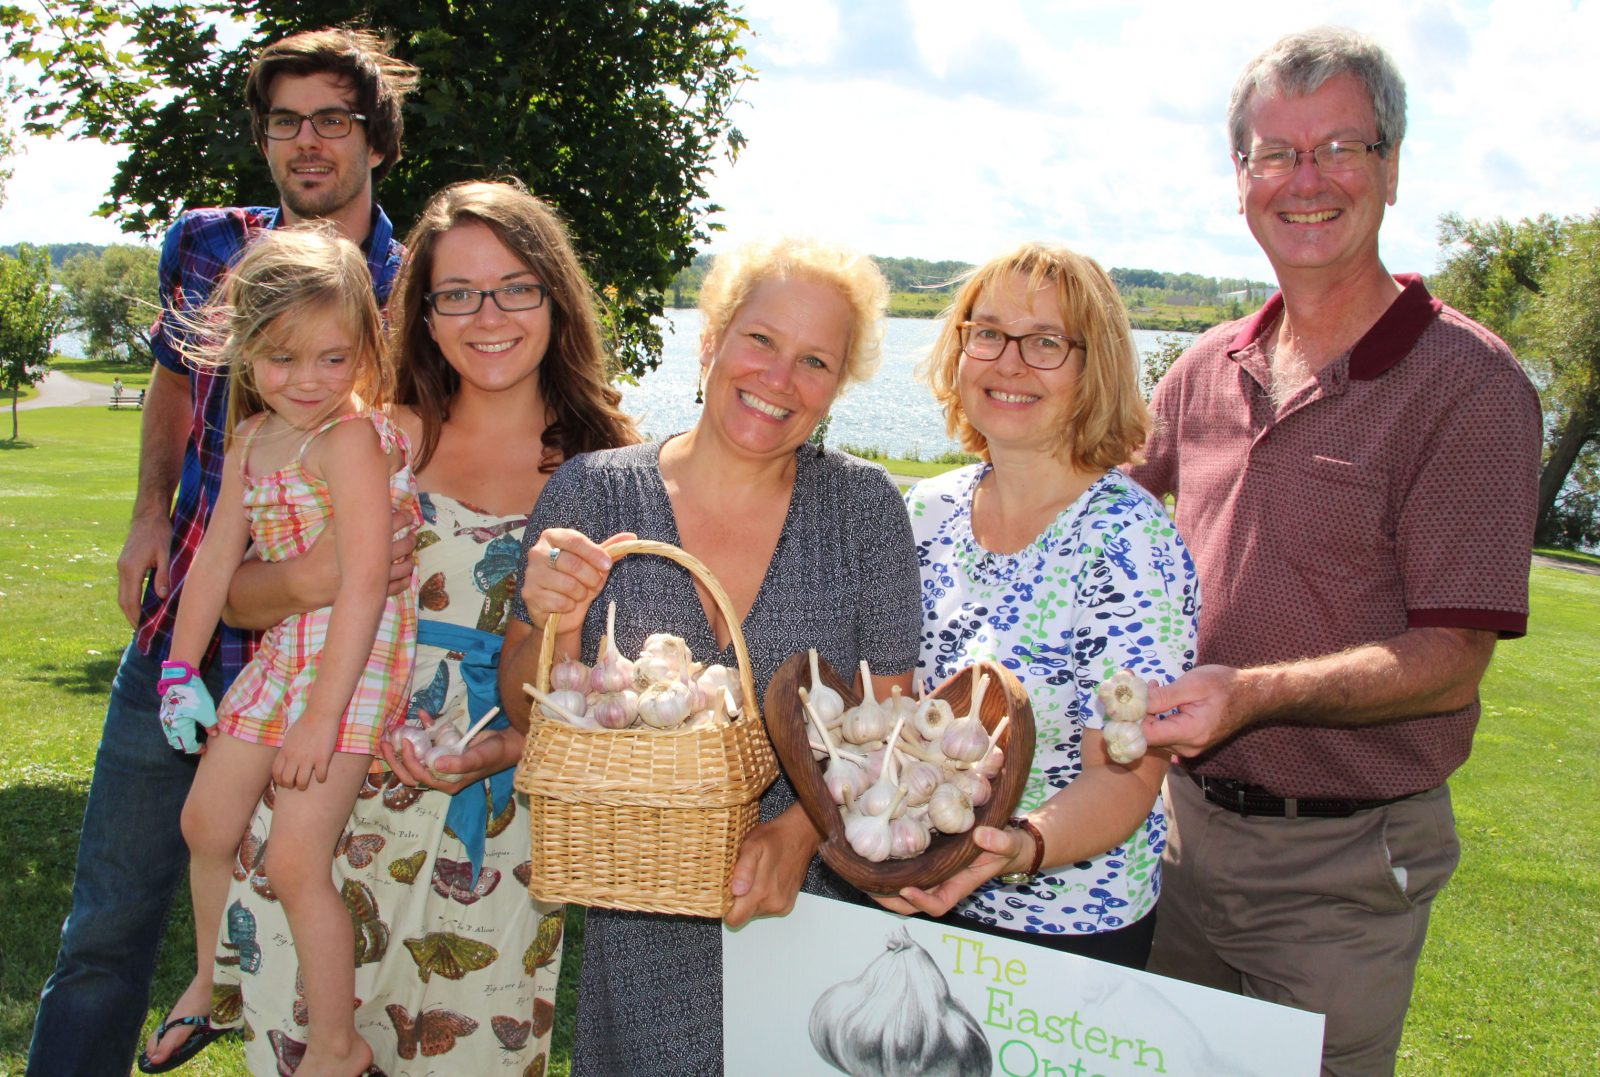 Upcoming festival a breath of fresh air for garlic lovers